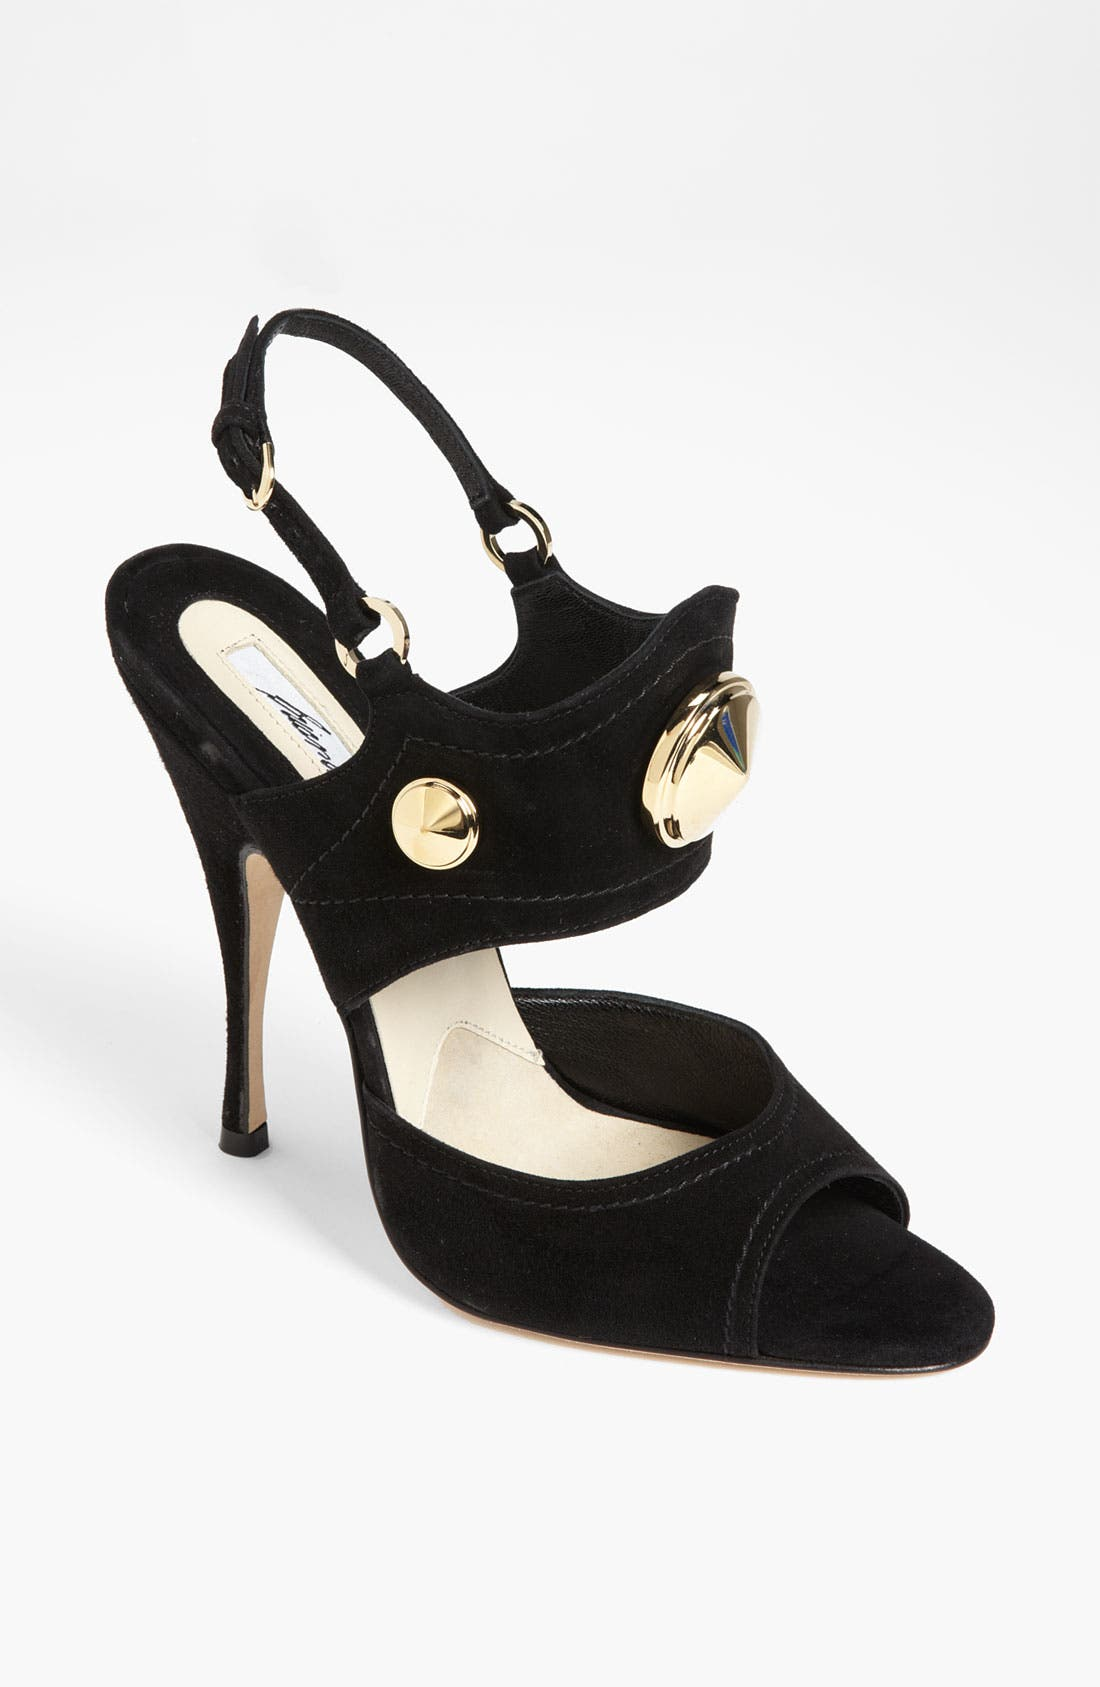 Alternate Image 1 Selected - Brian Atwood 'Afrodita' Sandal